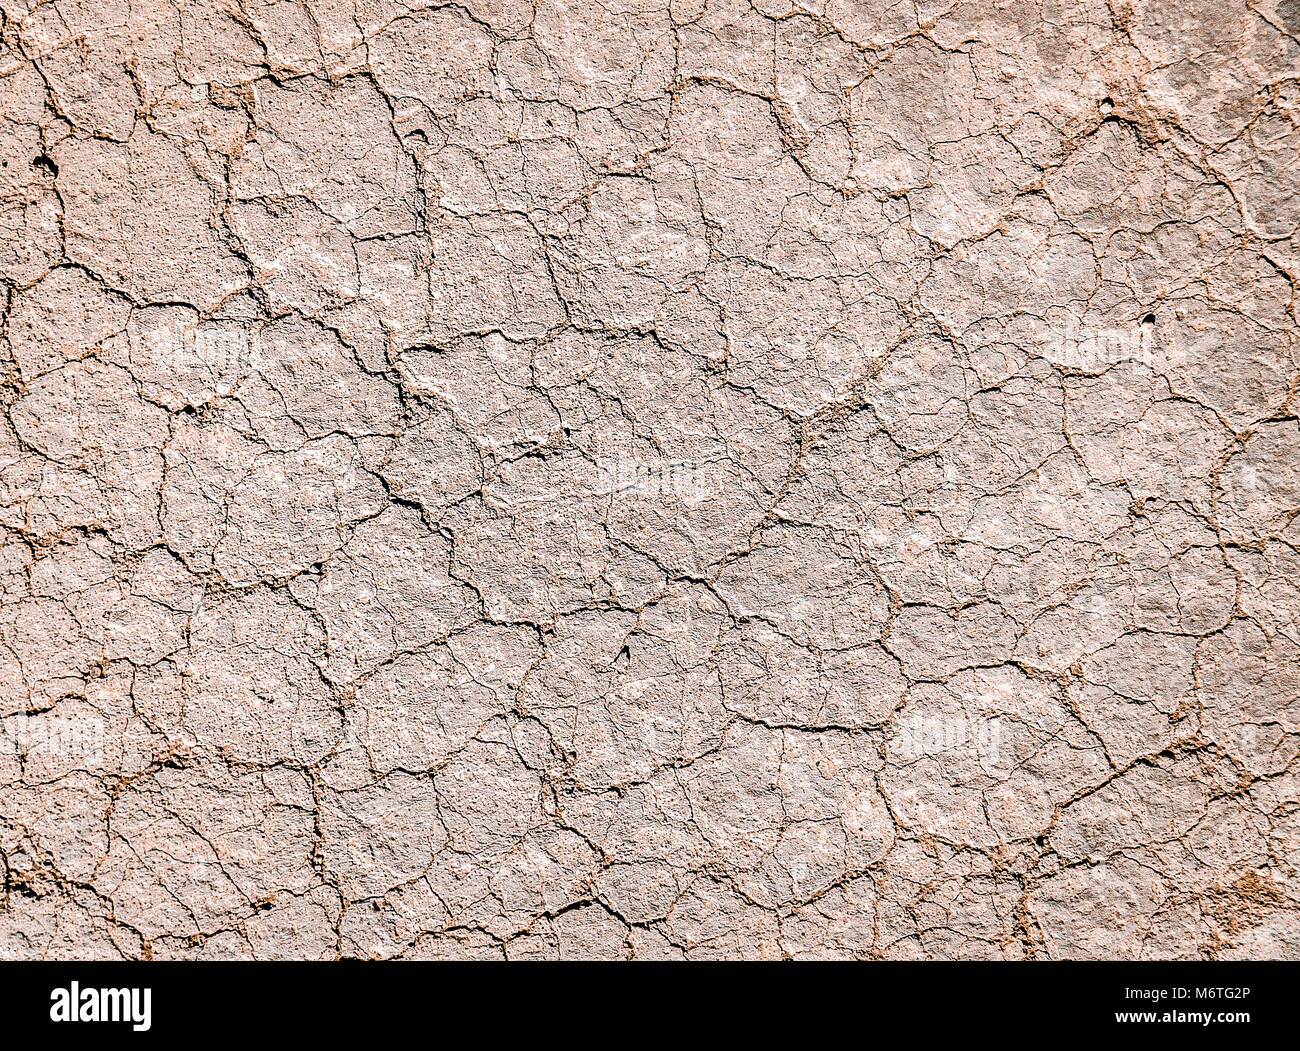 Dry cracked land. Arid environment. Water waste concept. Suitable for global warming concept. - Stock Image